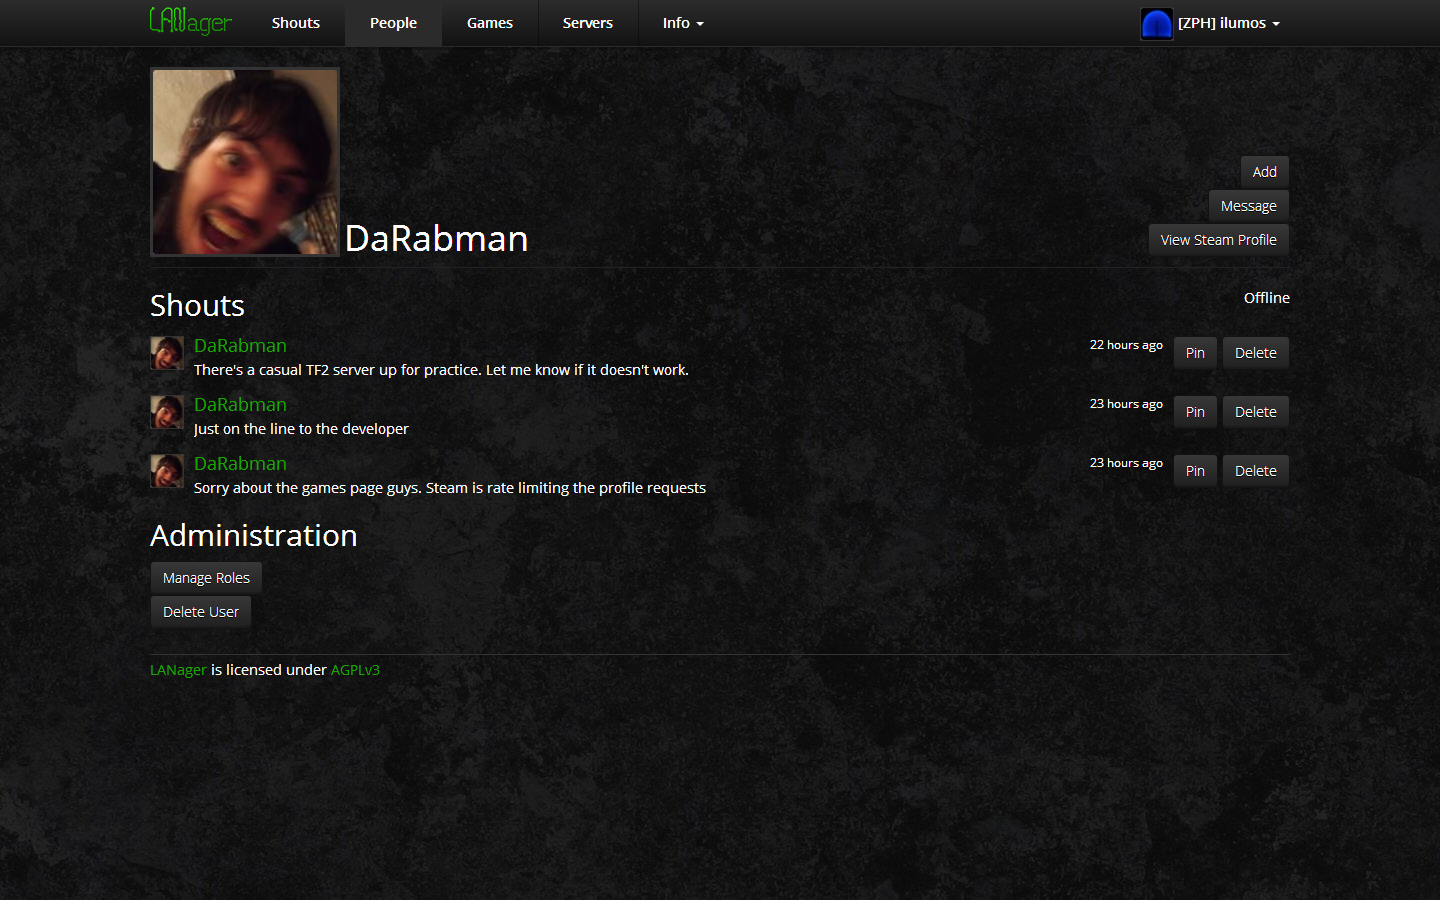 Profile (Admin View)